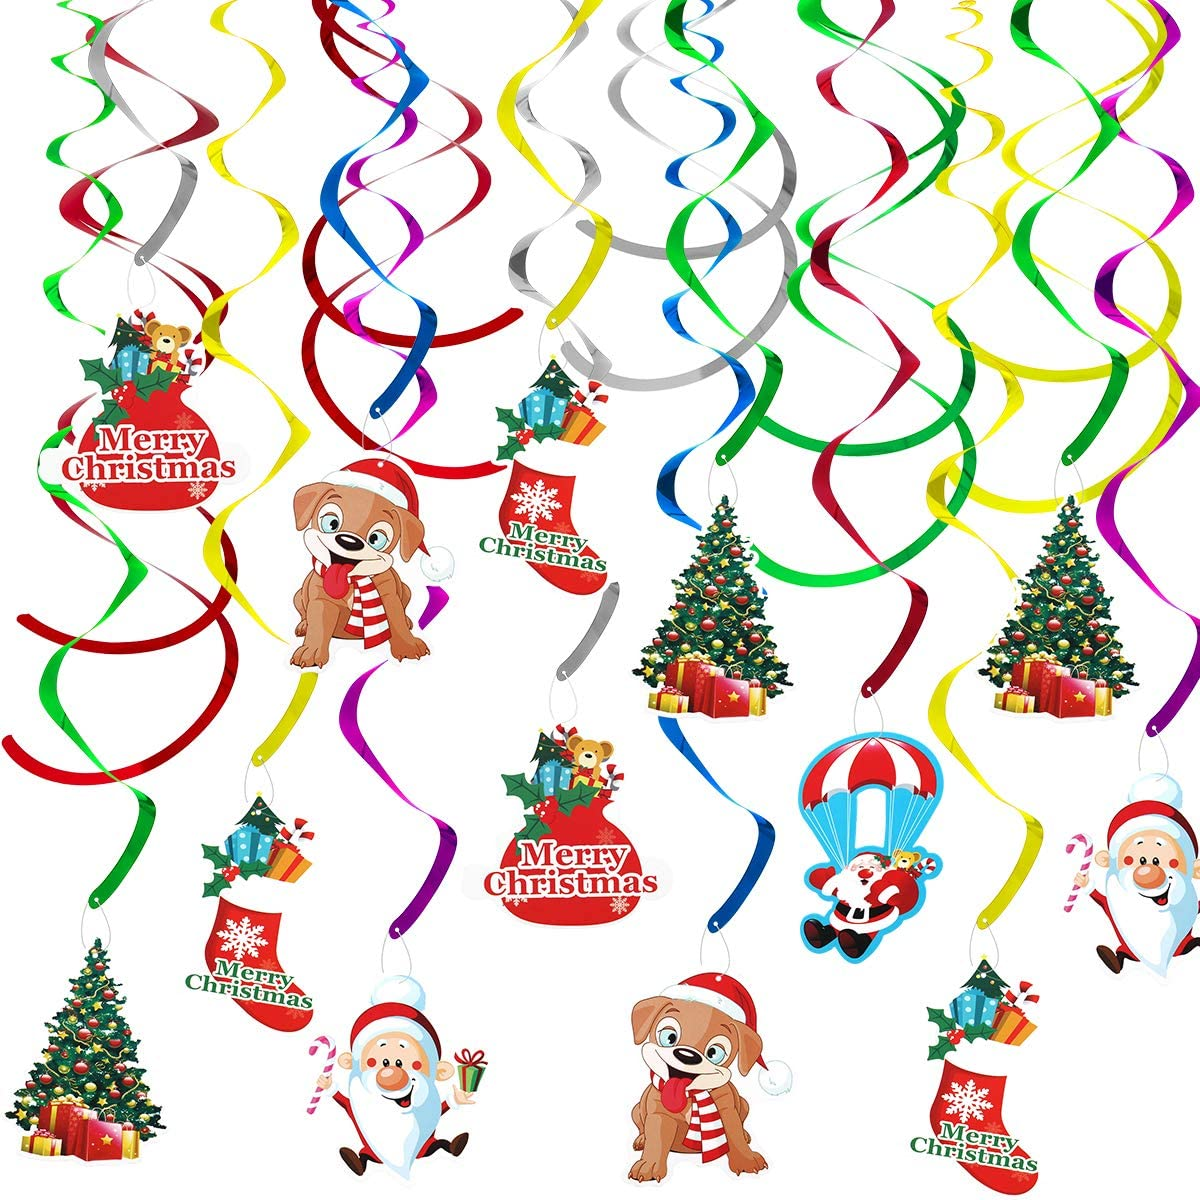 Amazon Com Mewtogo 36pcs Christmas Hanging Swirl Decoration Kit Christmas Decorations Merry Christmas Ceiling Decorations Swirl Foil Garland Xmas Decor For Winter Holiday Wonderland Themed Party Supplies Toys Games